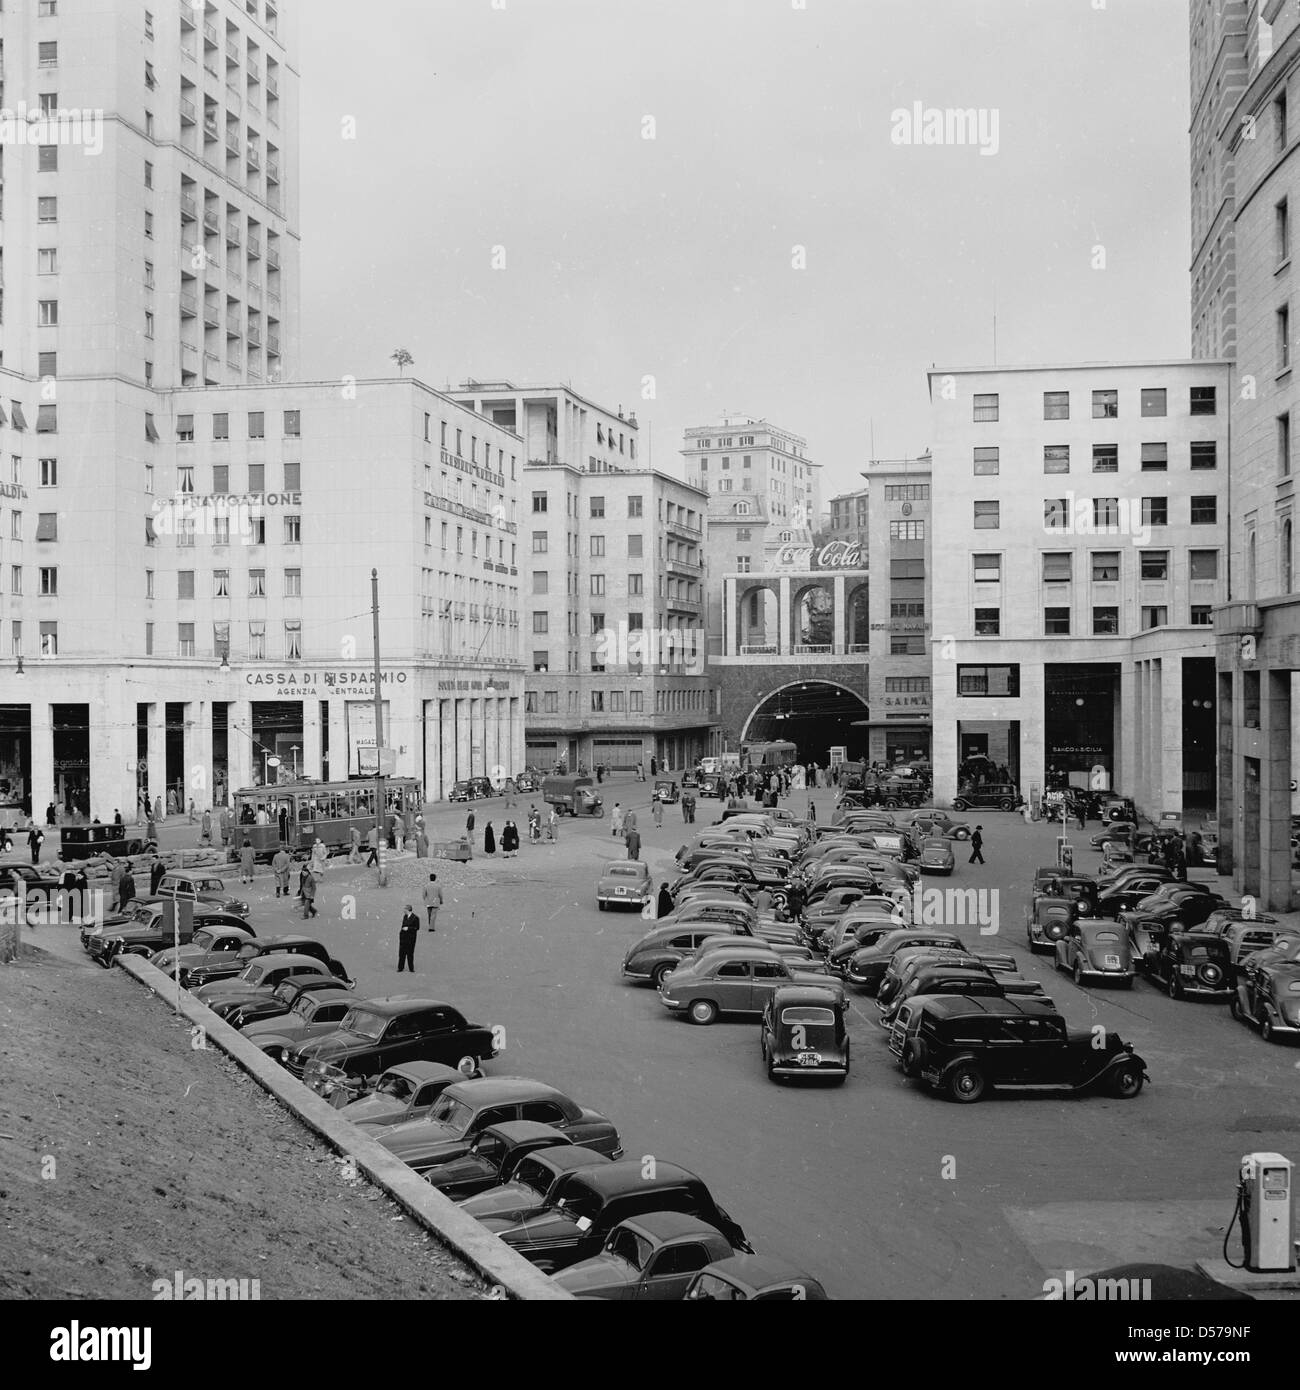 Historical, 1940s. Cars parked outside offices. - Stock Image